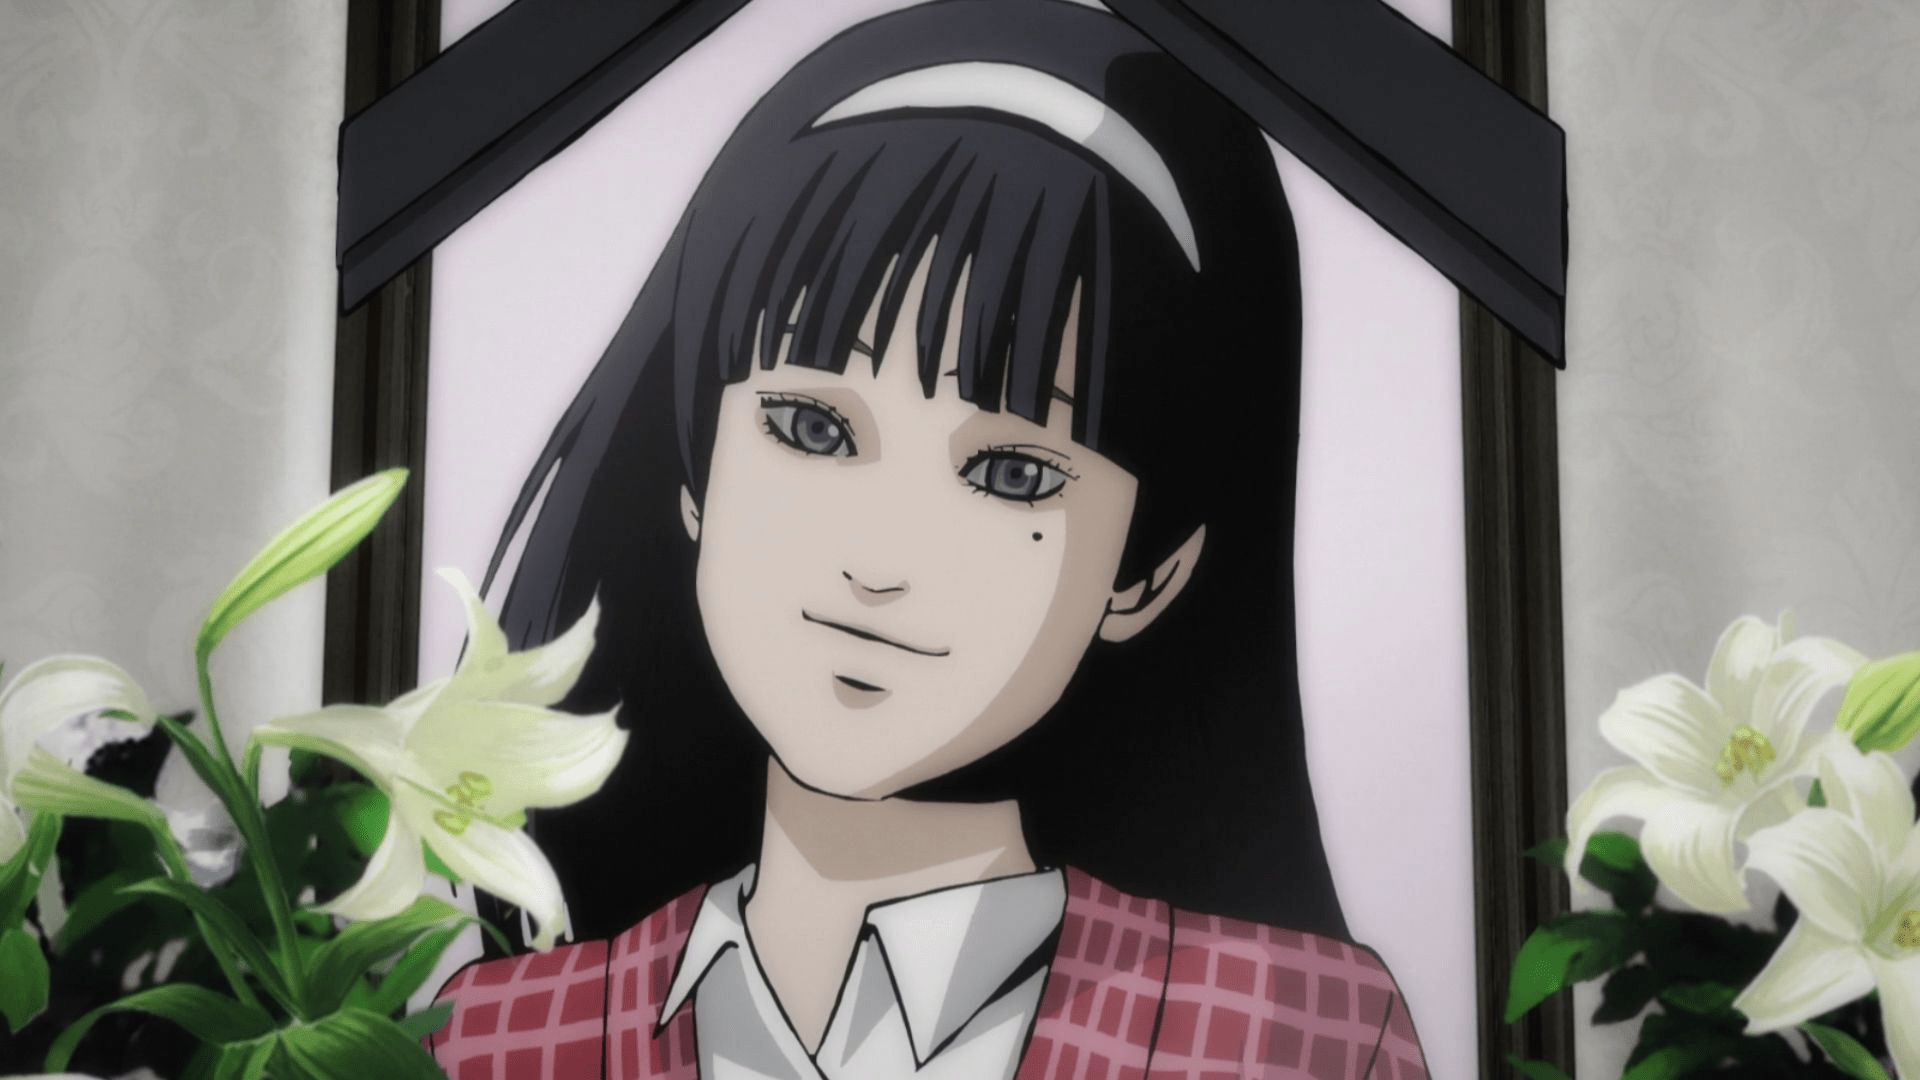 Tomie in anime form